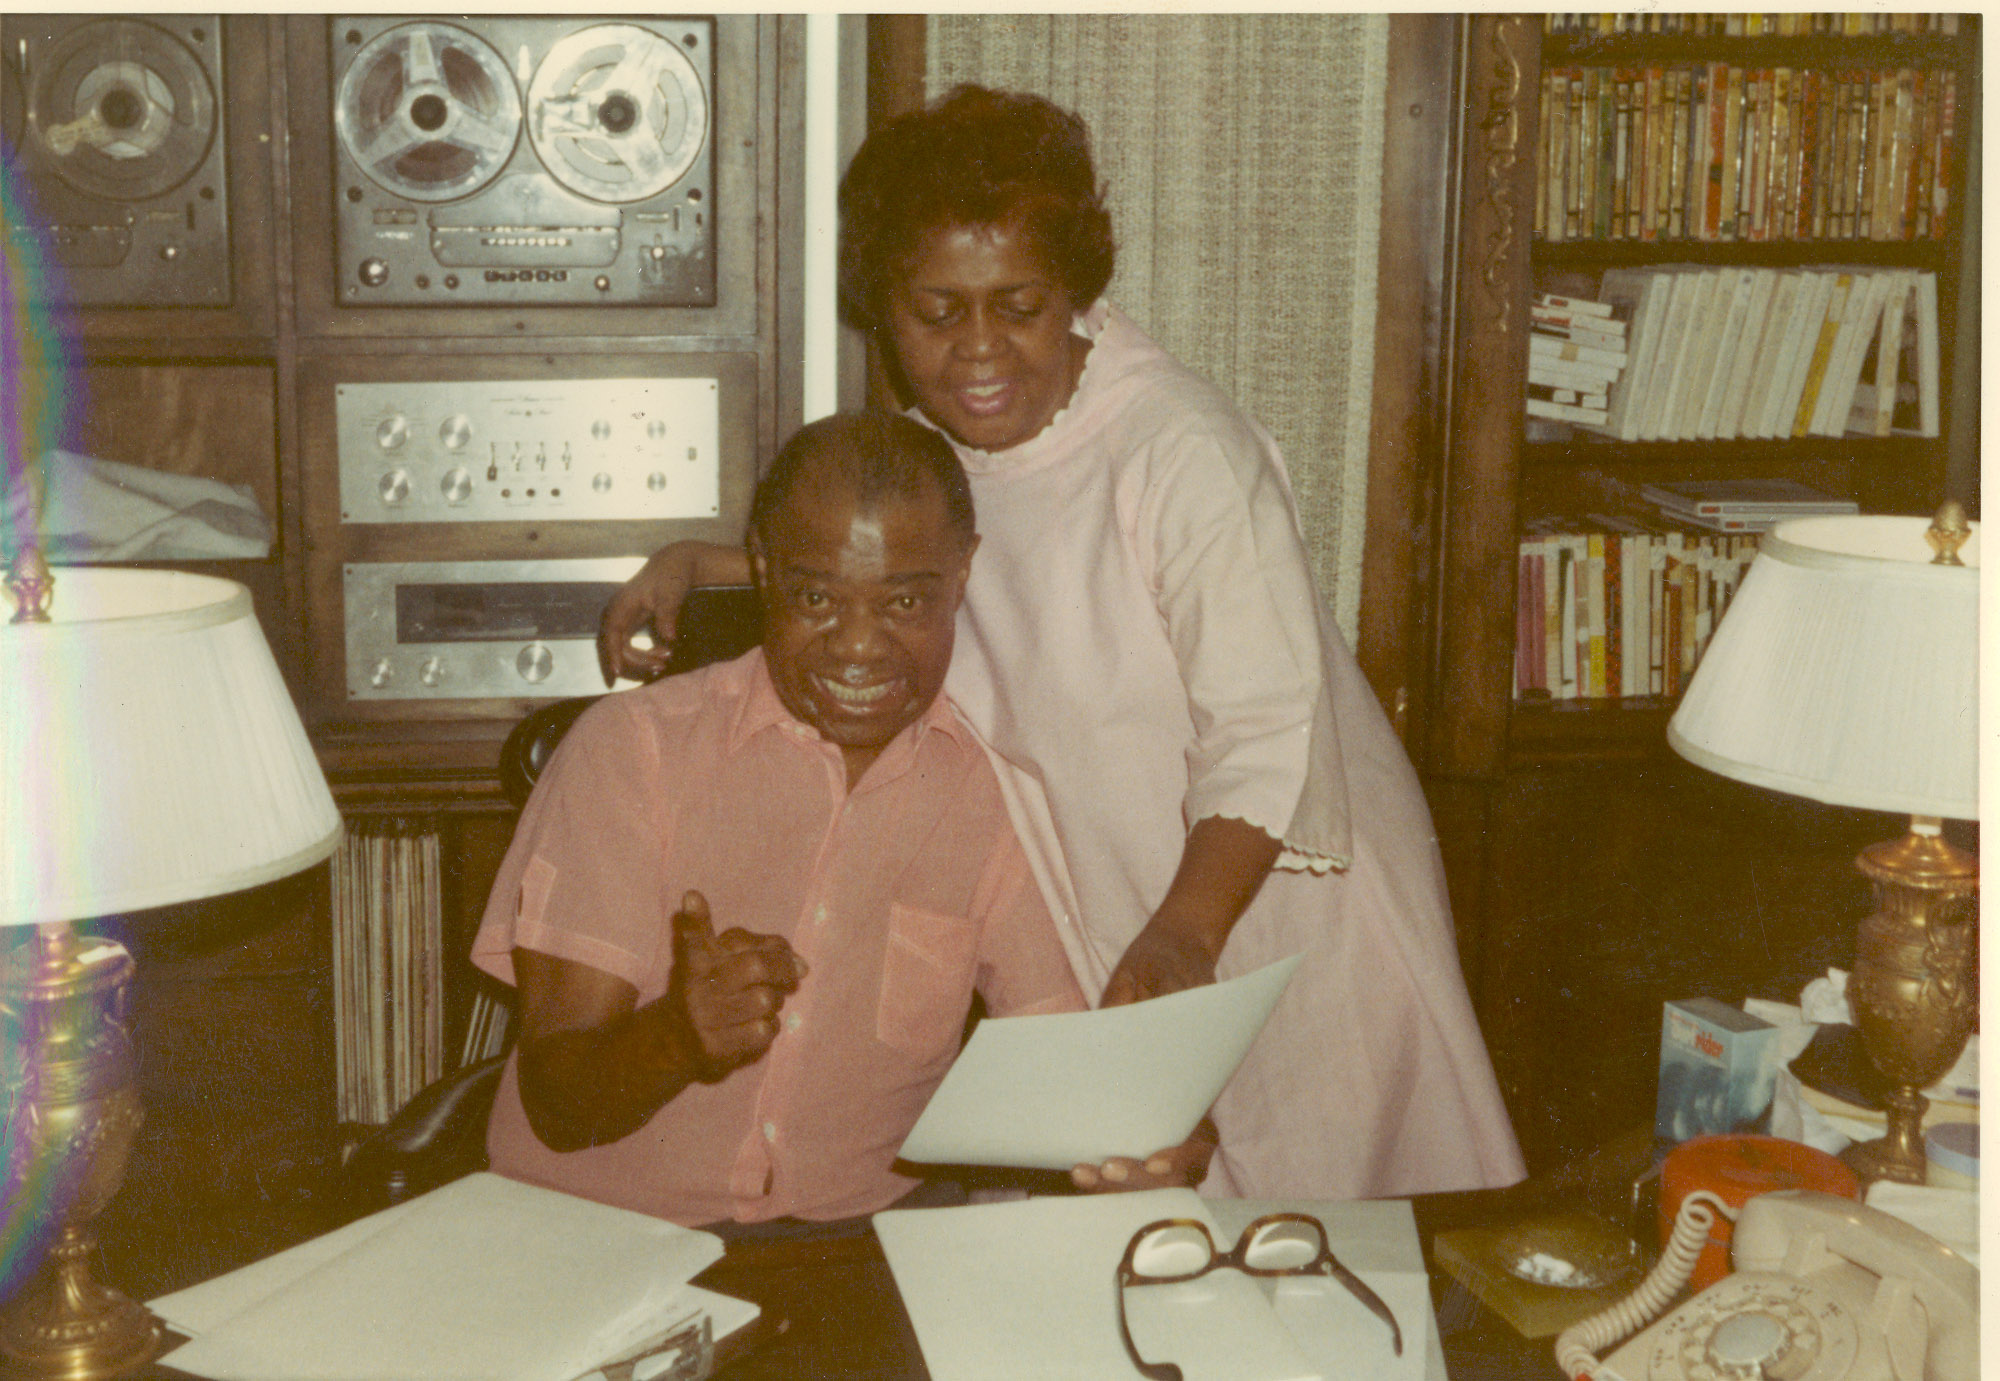 Louis and wife Lucille at his desk in the den